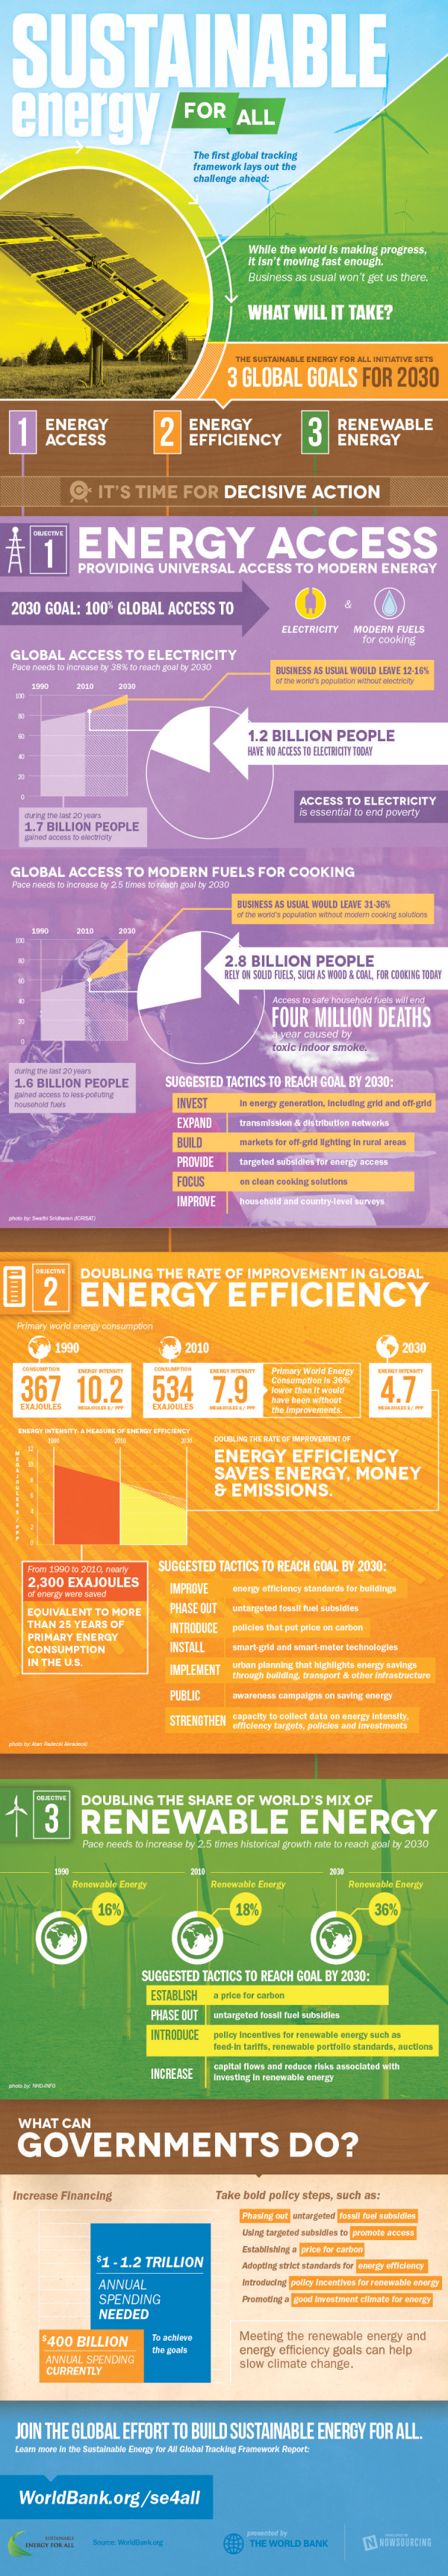 Sustainable Energy for All